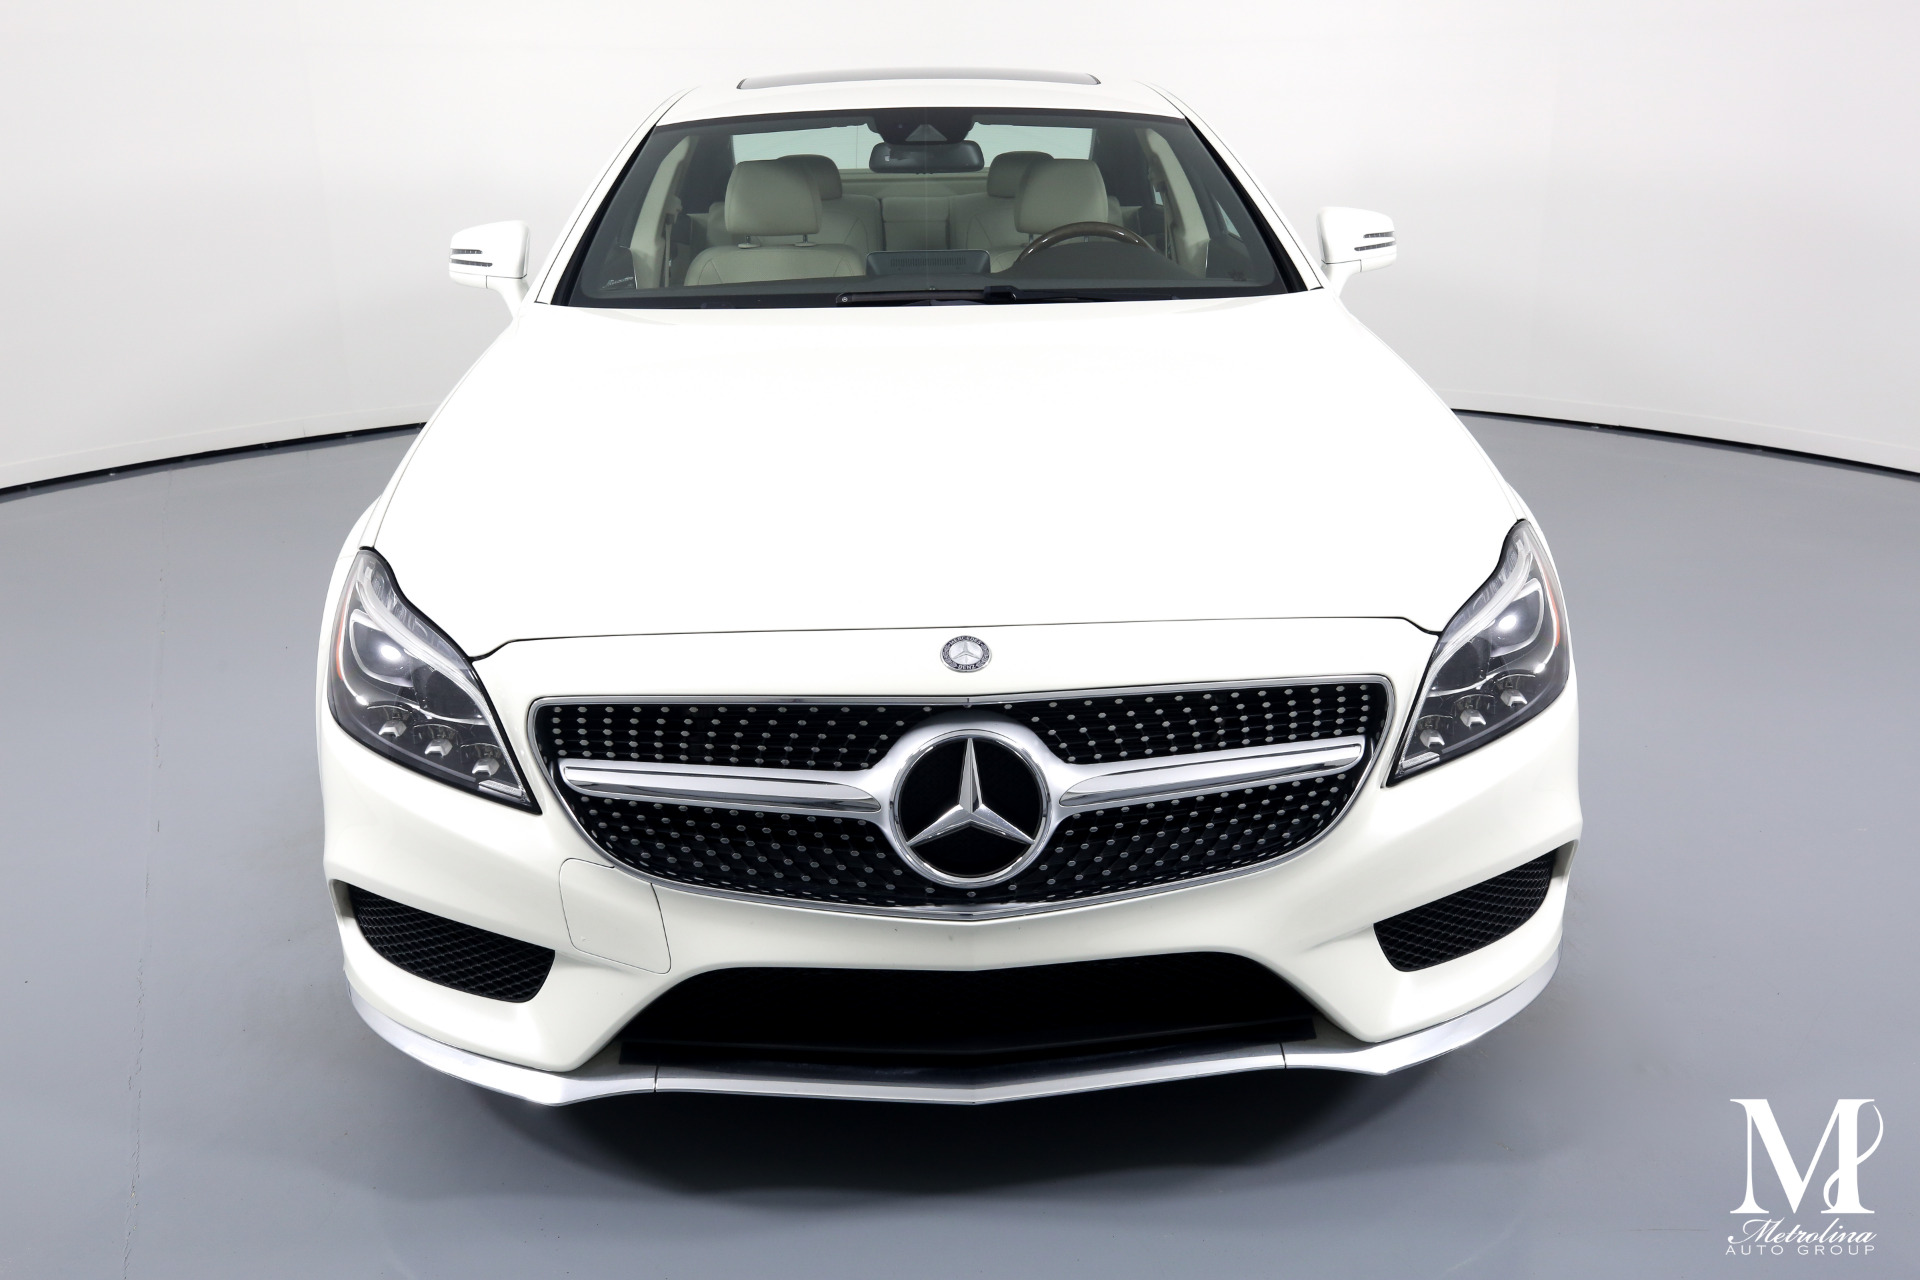 Used 2016 Mercedes-Benz CLS CLS 400 for sale $33,996 at Metrolina Auto Group in Charlotte NC 28217 - 3